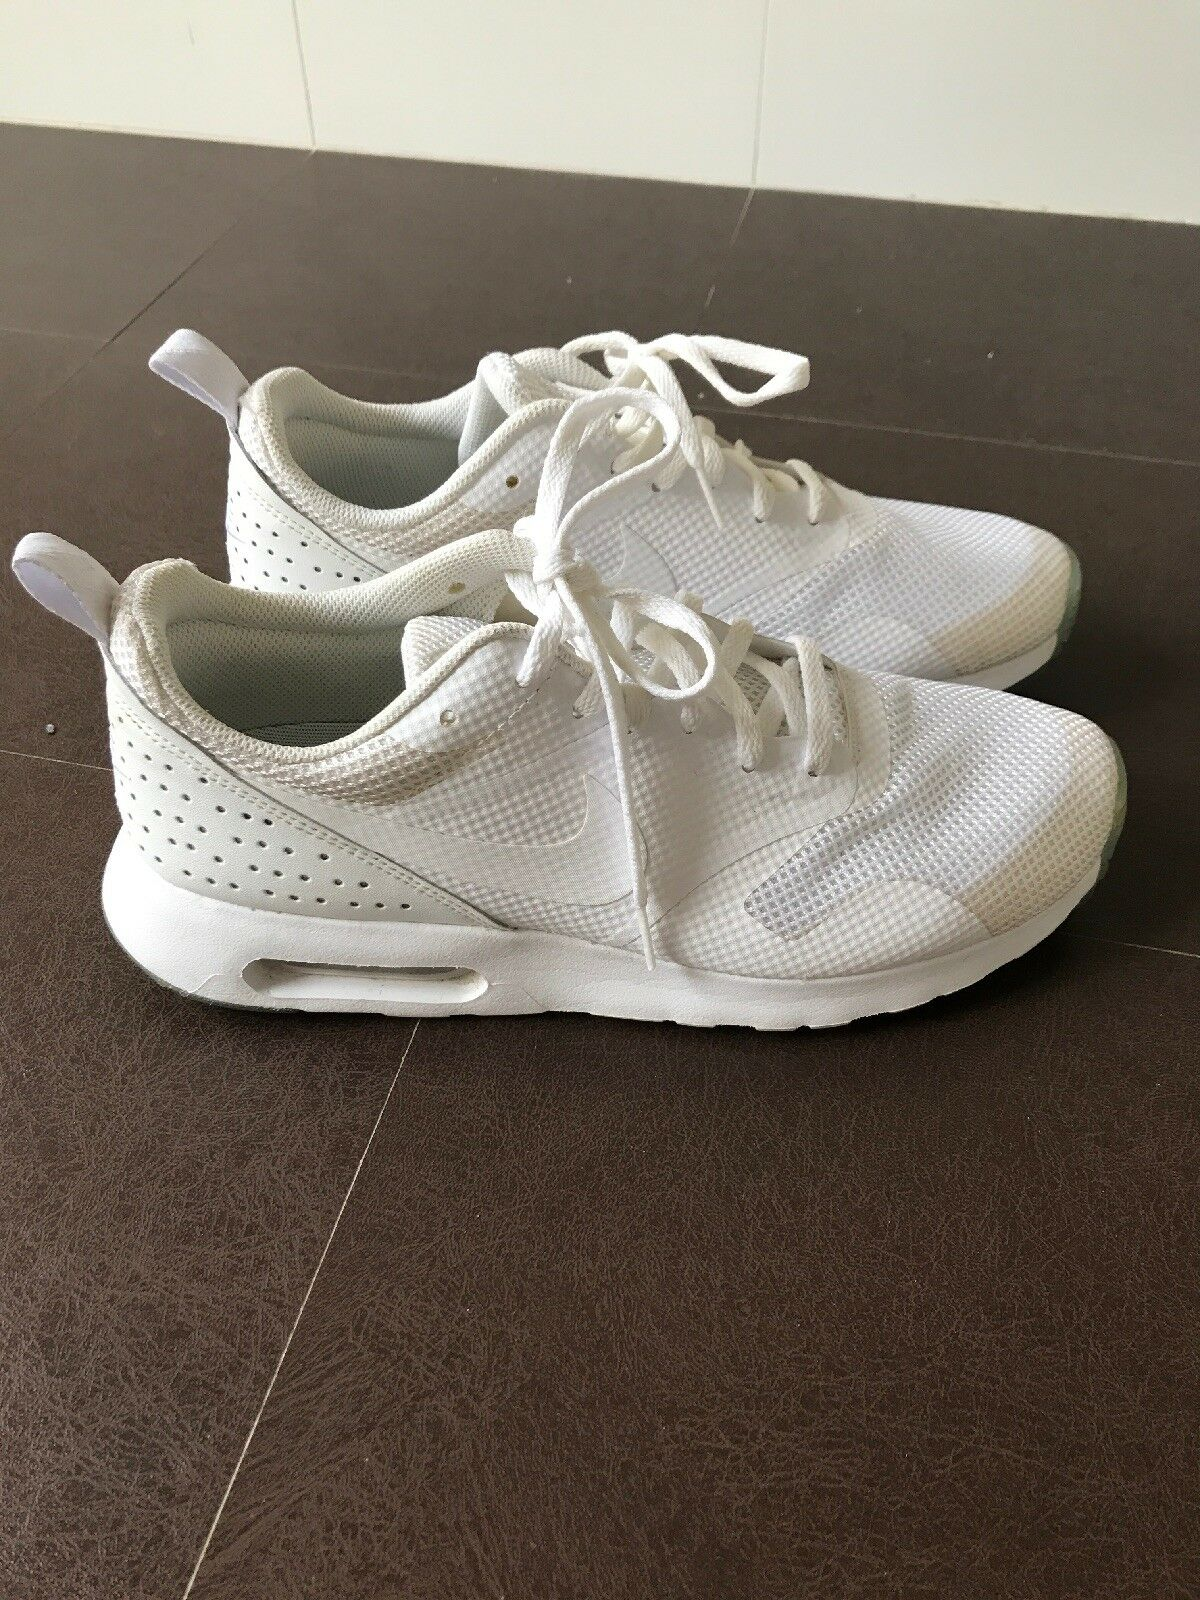 Nike Air Max Tavas Men's Casual Shoes All White Size US 8.5